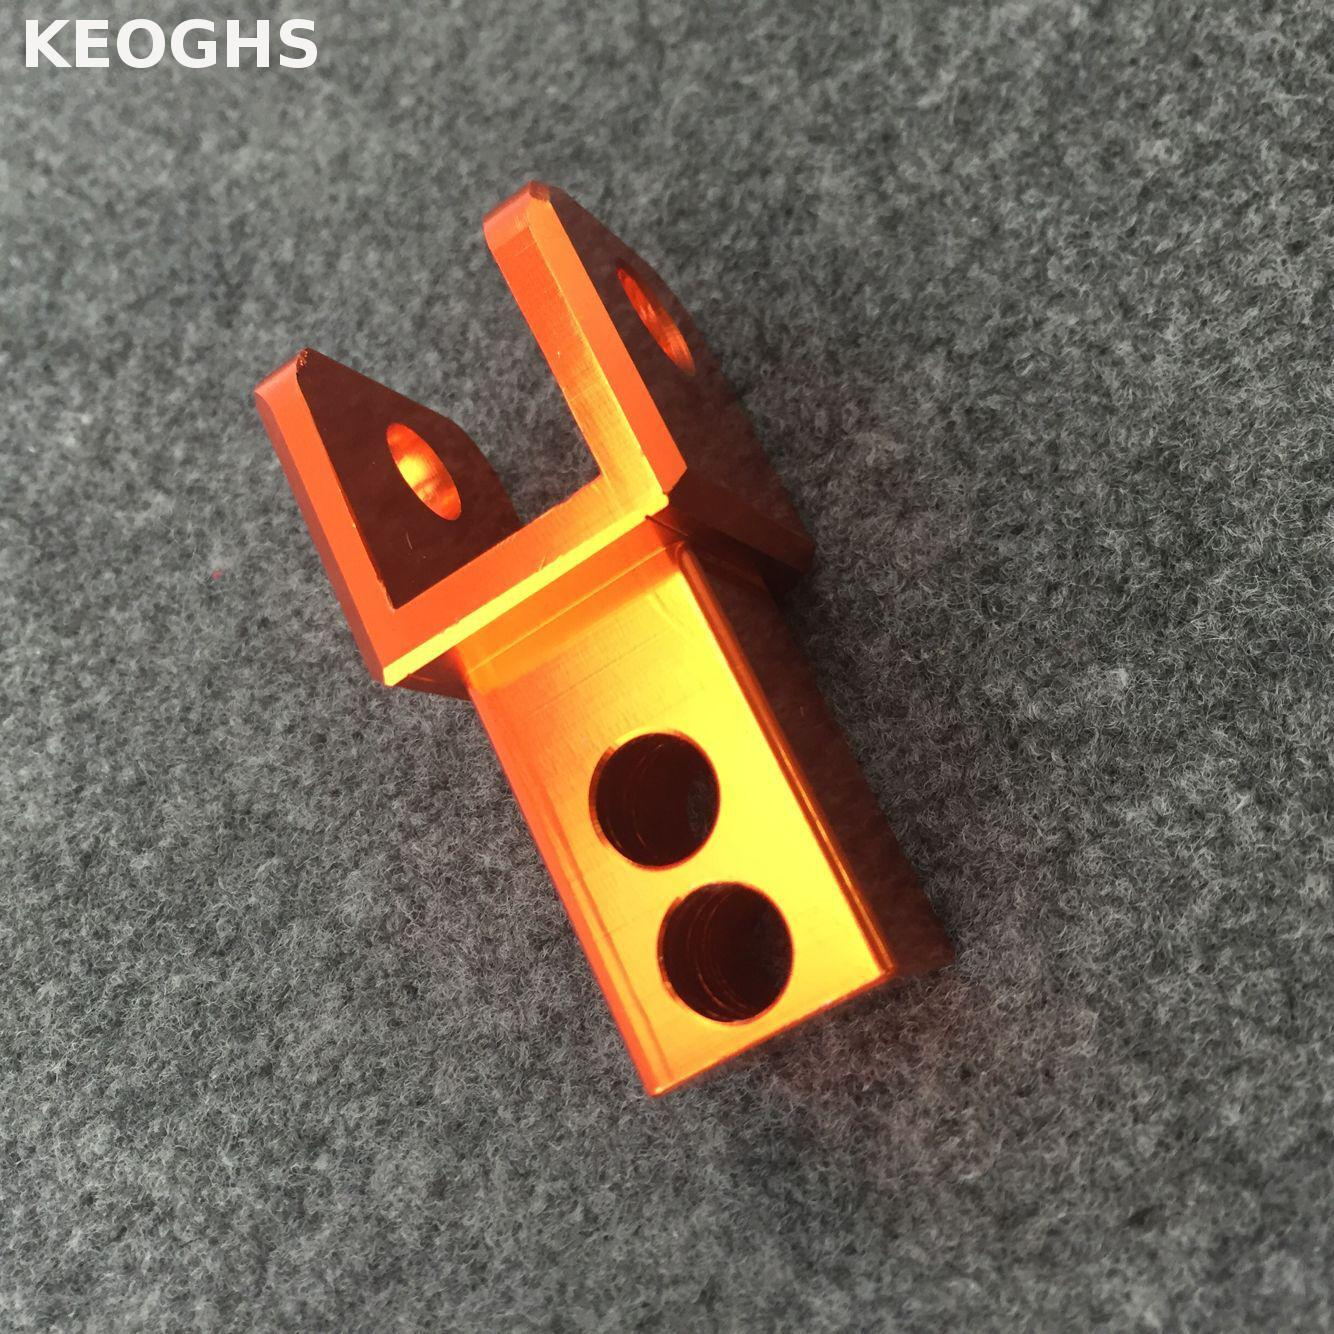 Keoghs Motorcycle Rear Shock Absorbers Heightening Pads All Cnc Aluminum For Honda Yamaha Kawasaki Suzuki keoghs shock absorbers refit parts heightening device for motorcycle scooter damper shock absorber height increase